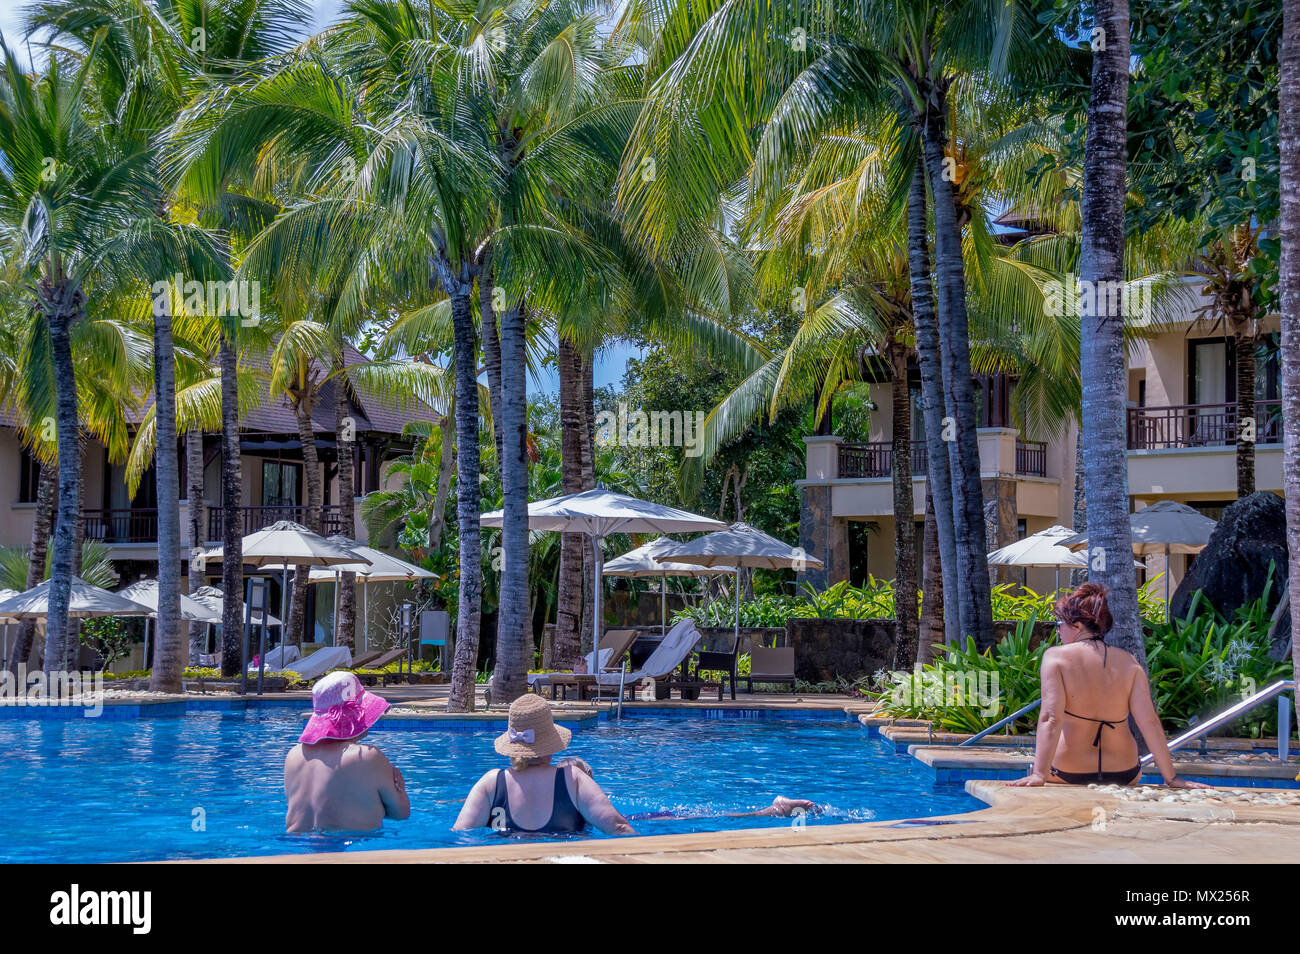 Balaclava, Mauritius - guests relaxing at the pool at the Westin Turtle Bay Resort and Spa image with copy space in landscape format - Stock Image